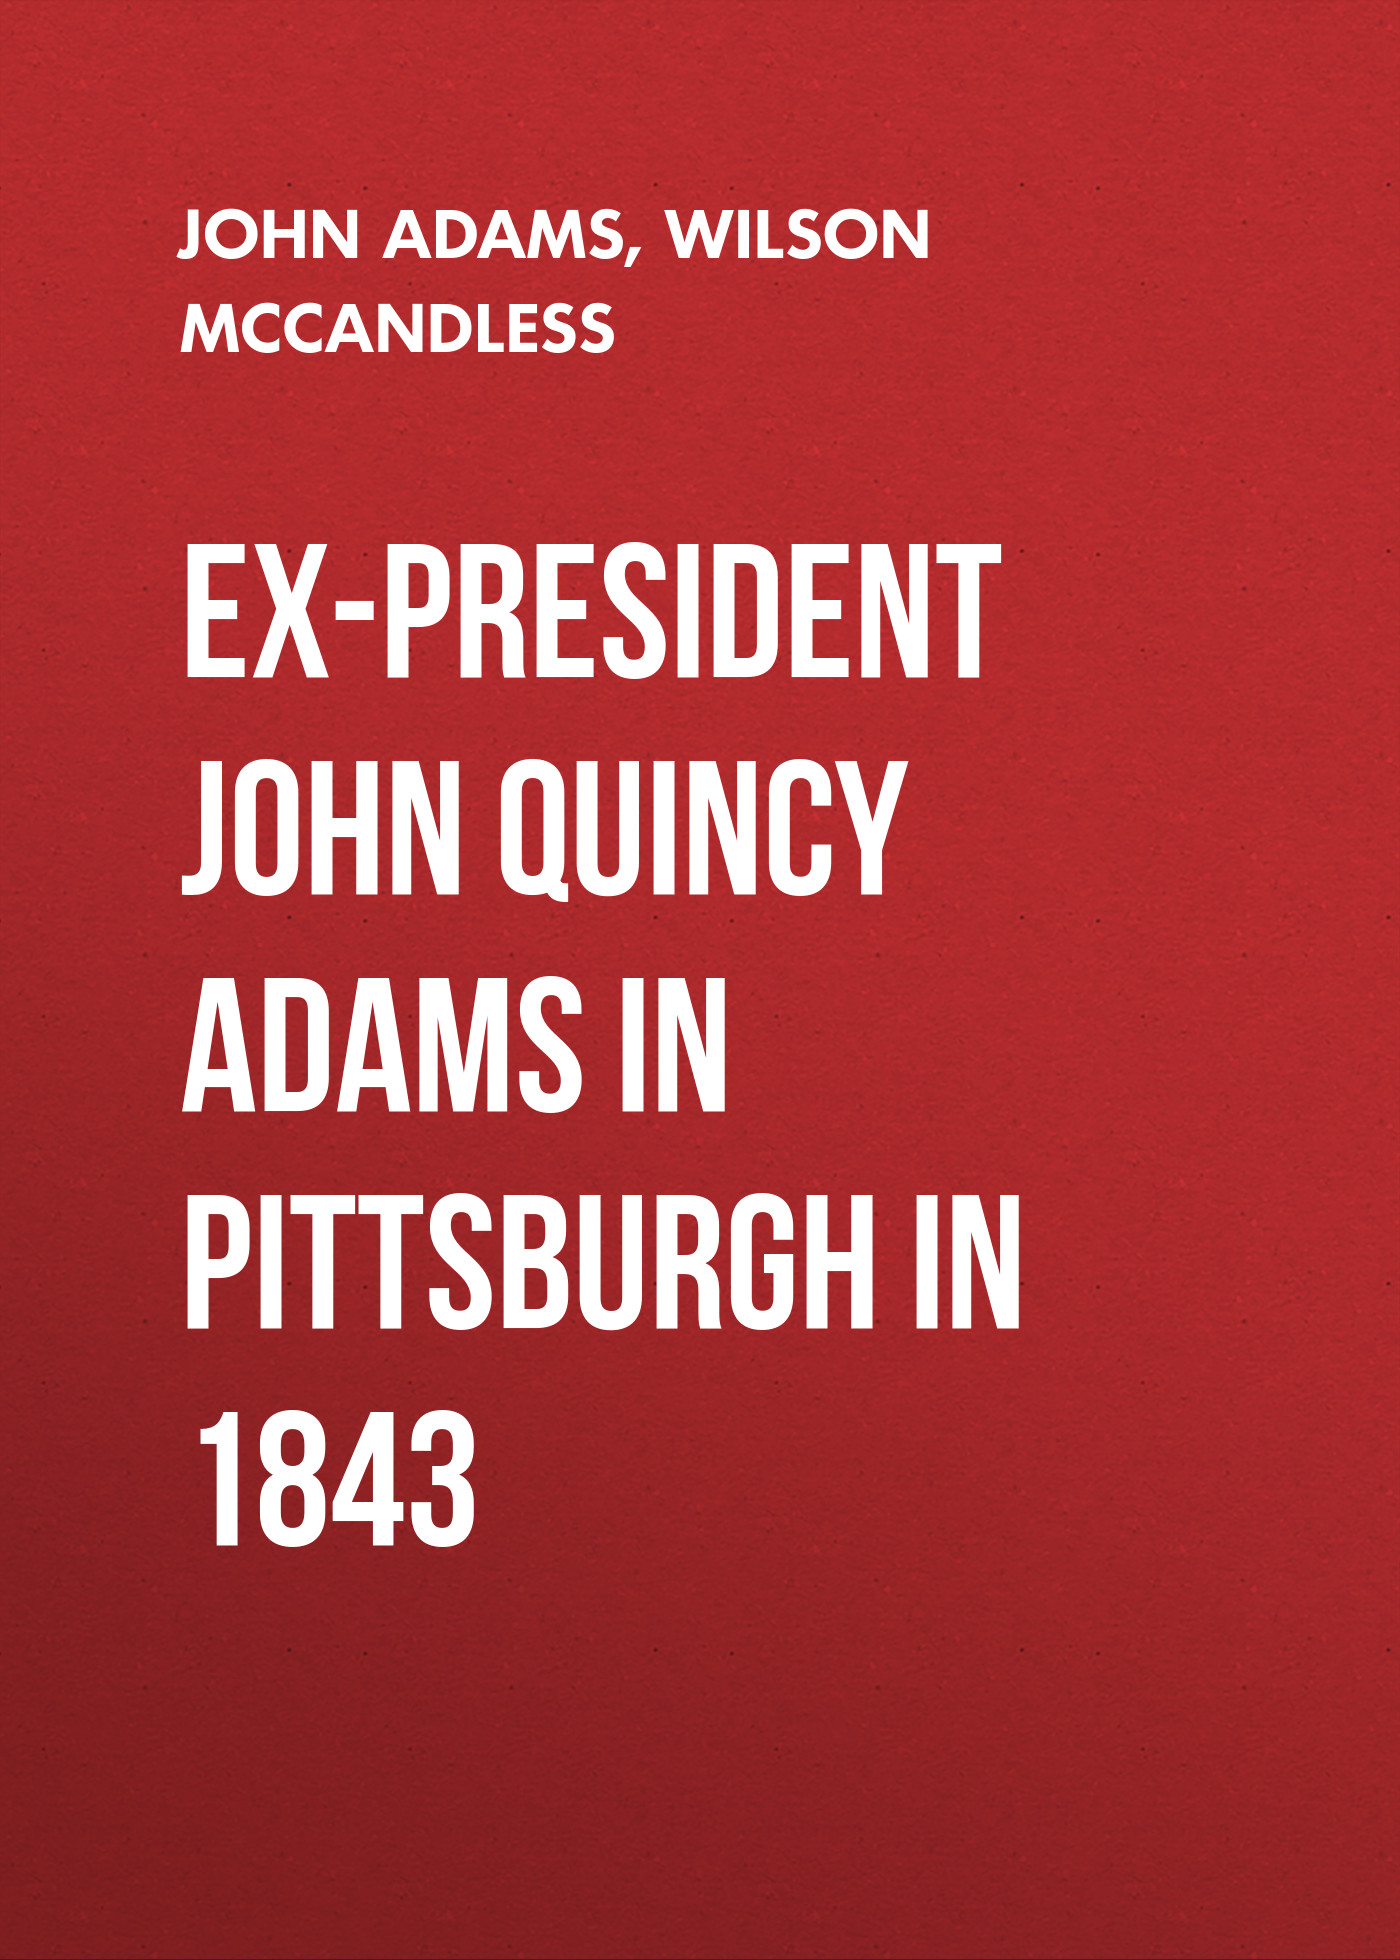 Adams John Quincy Ex-President John Quincy Adams in Pittsburgh in 1843 kev adams saint brieuc